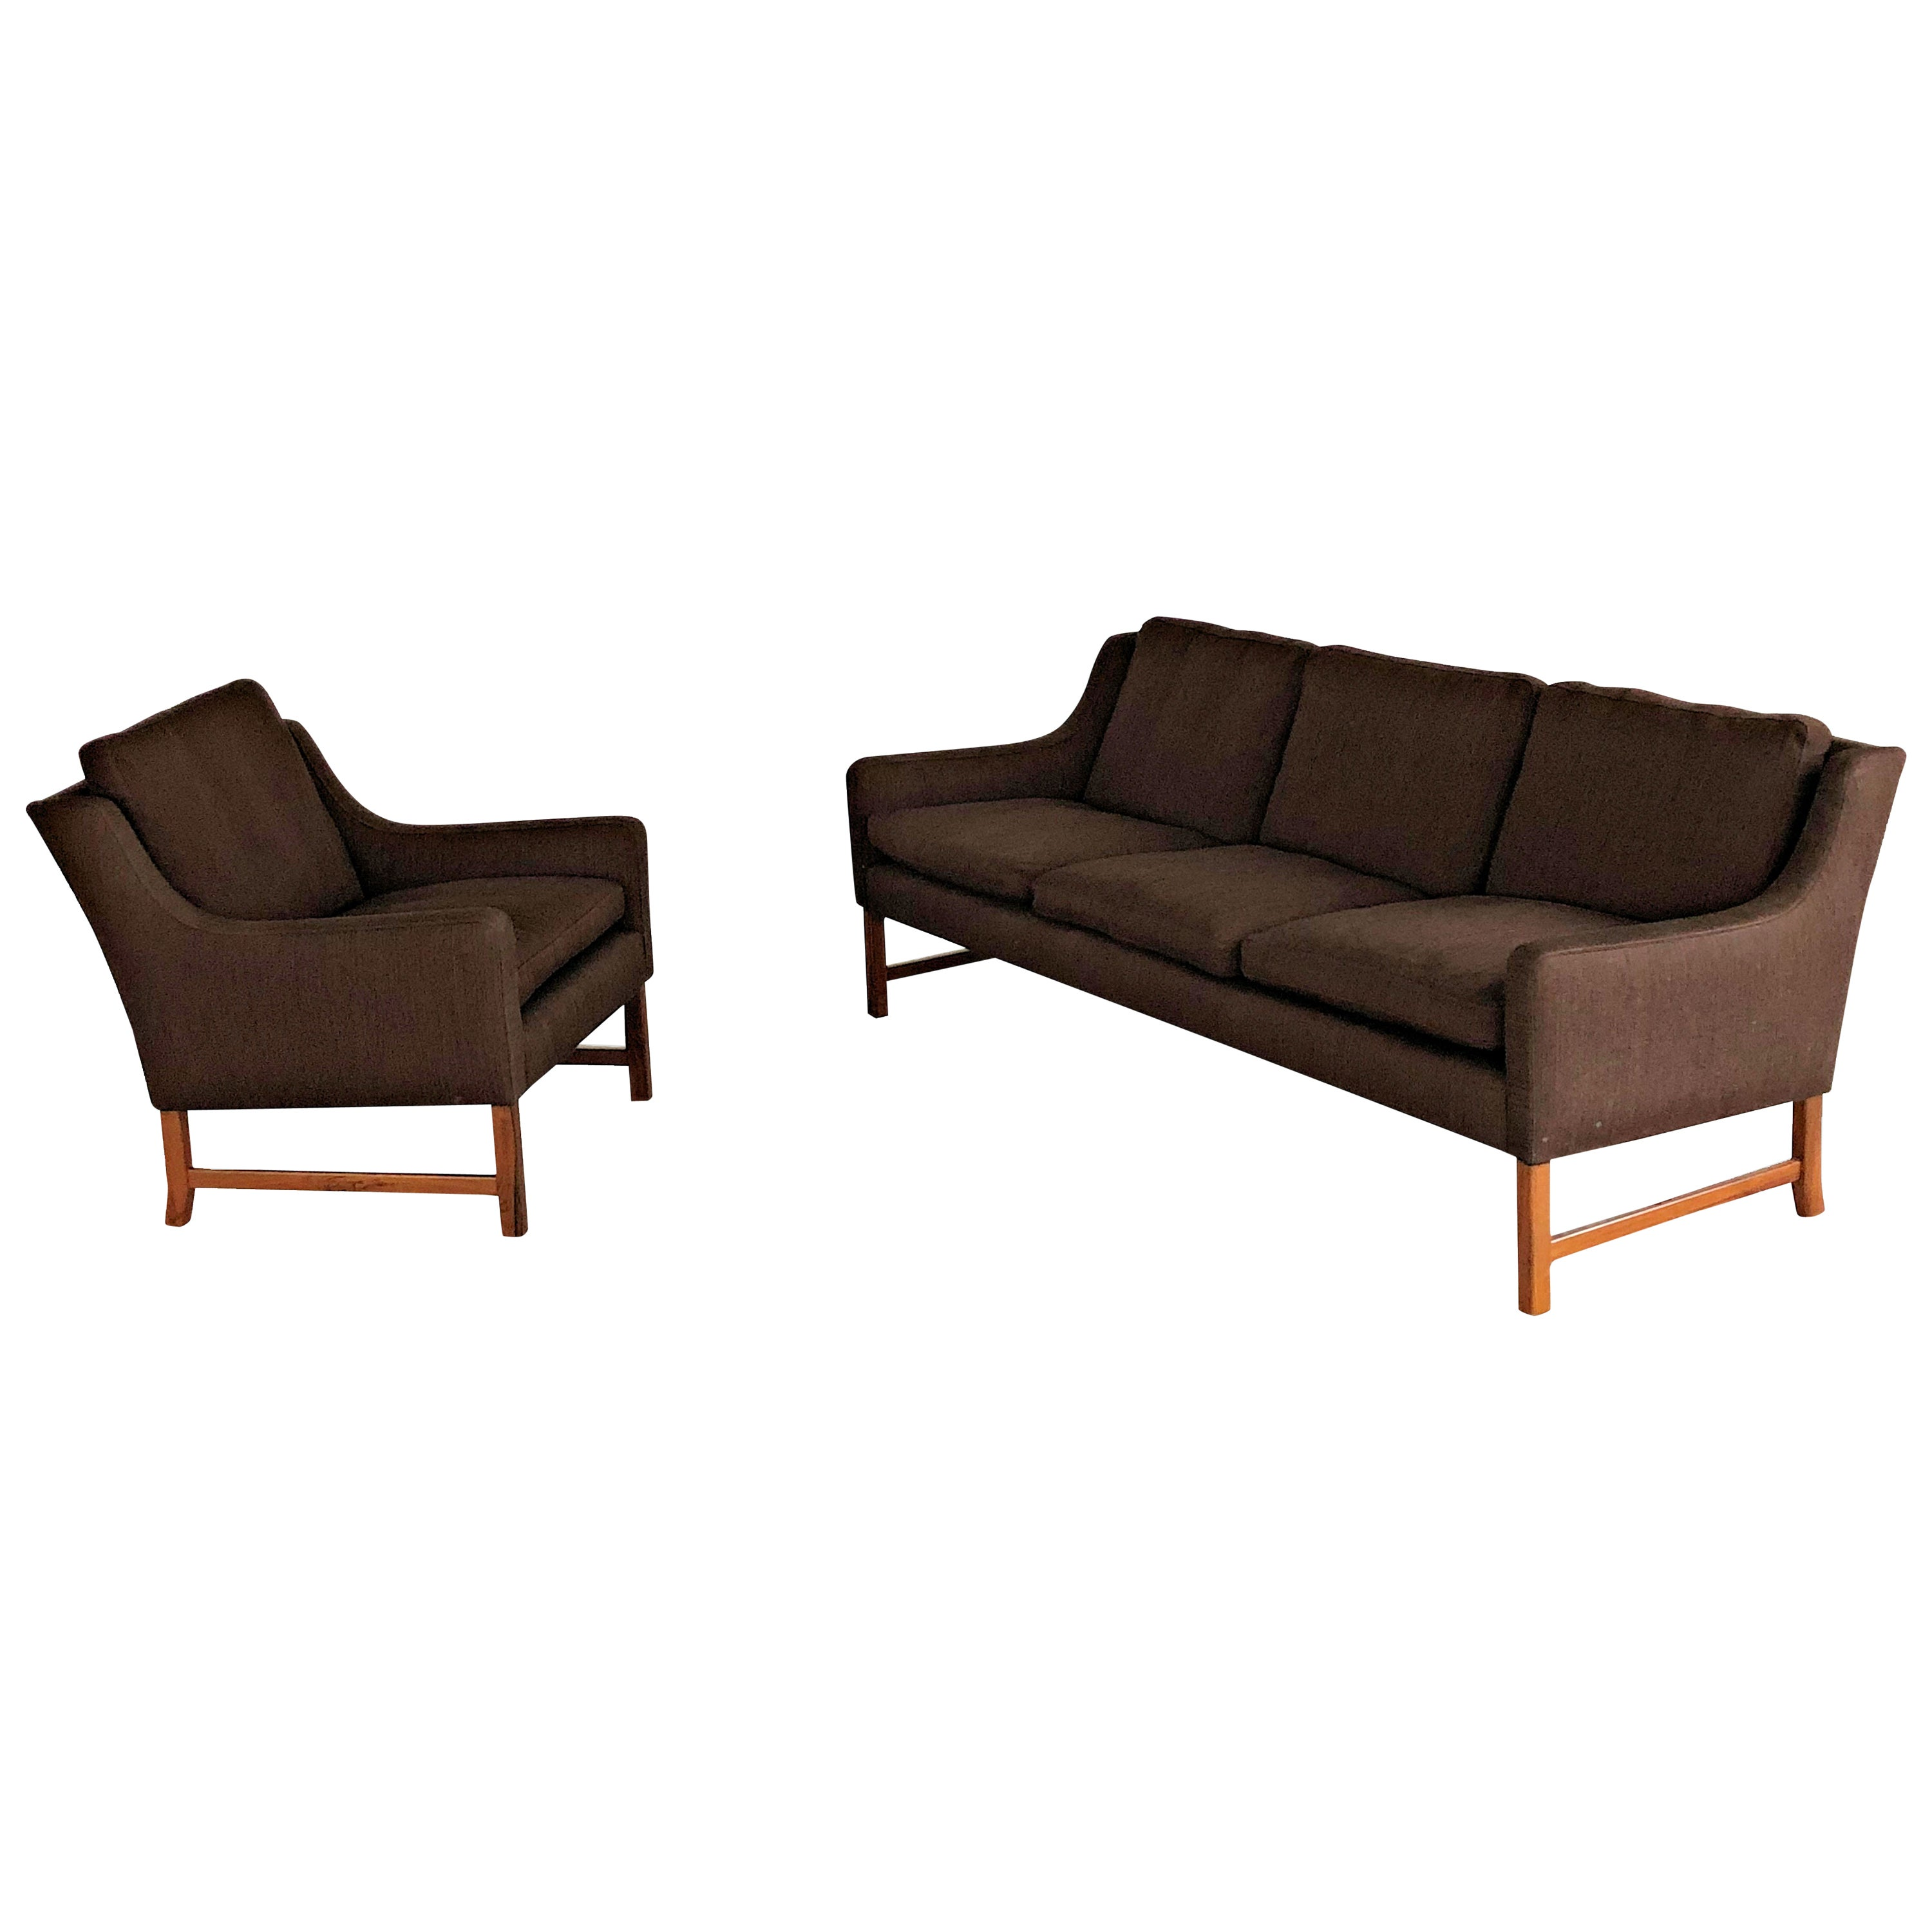 1960s Fredrik Kayser Rosewood Sofa and Lounge Chair by Vatne